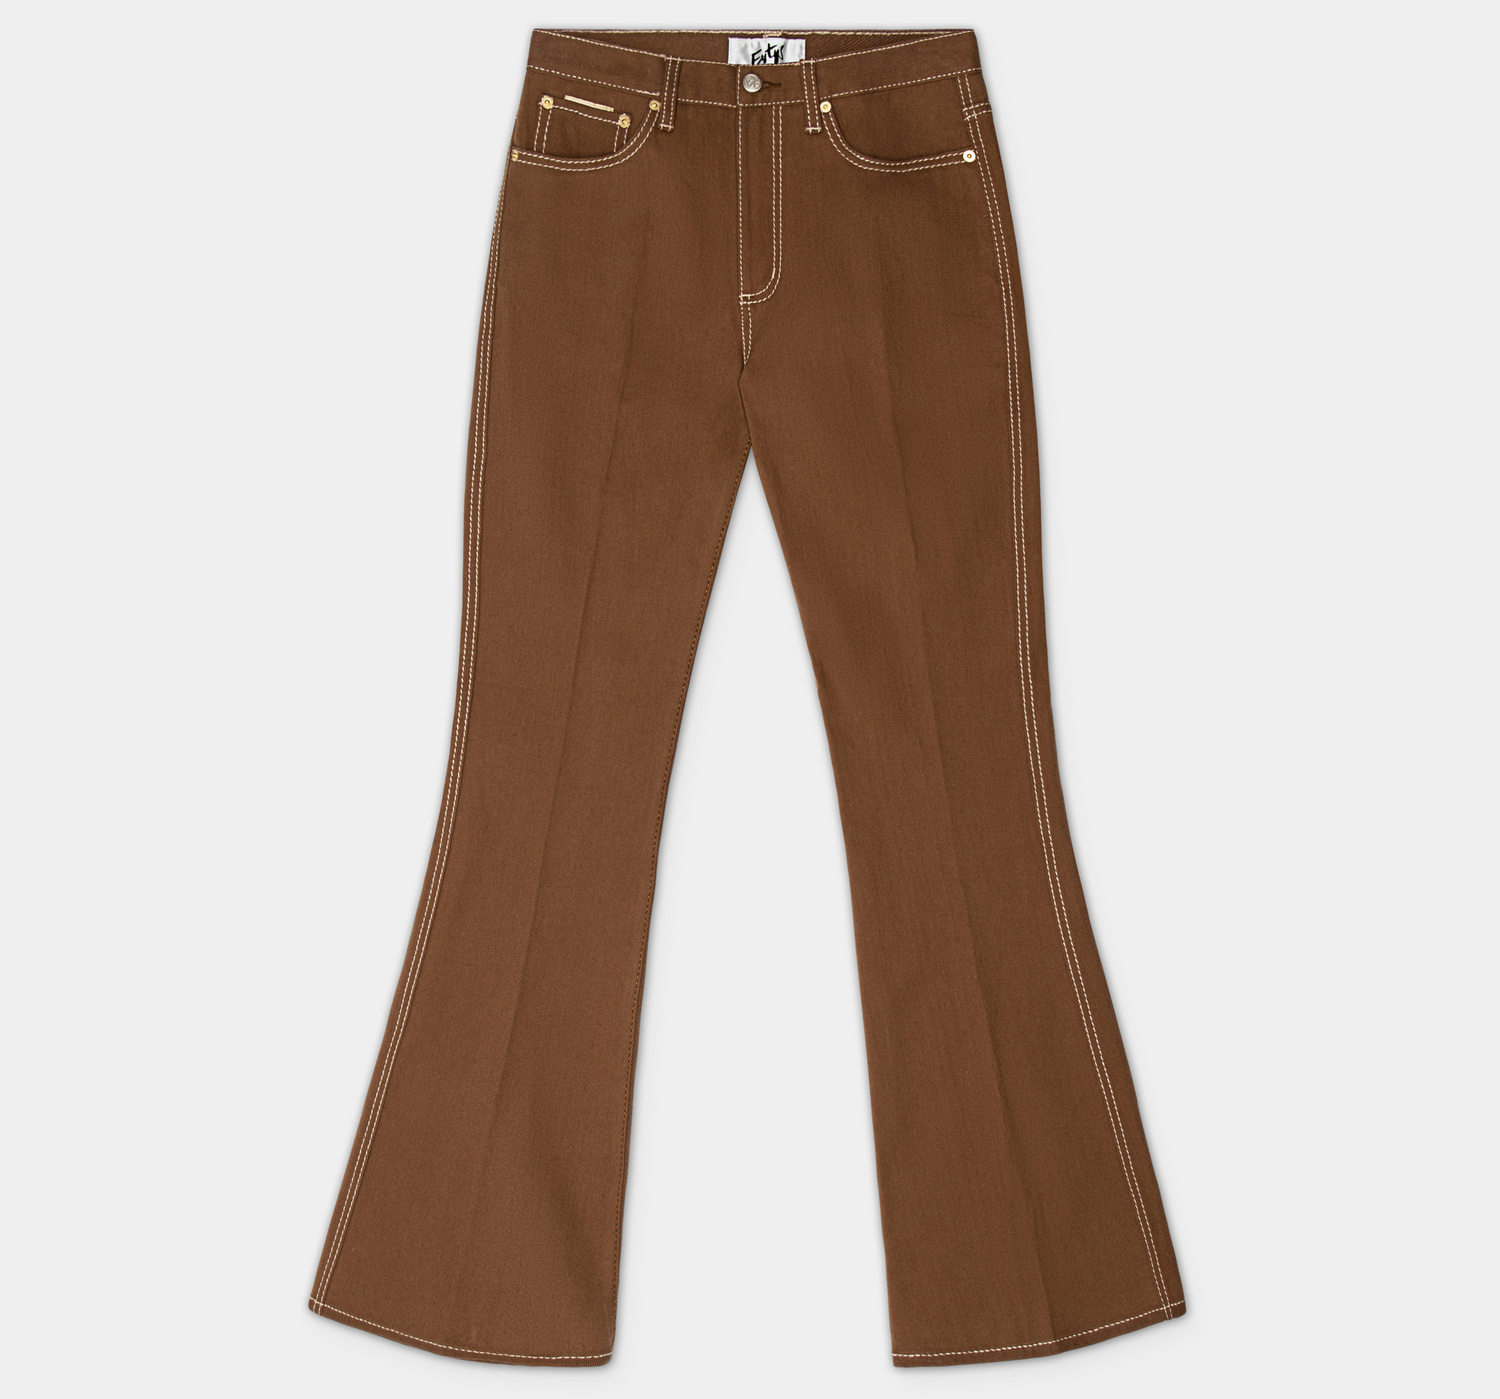 Eytys Oregon Twill Fudge